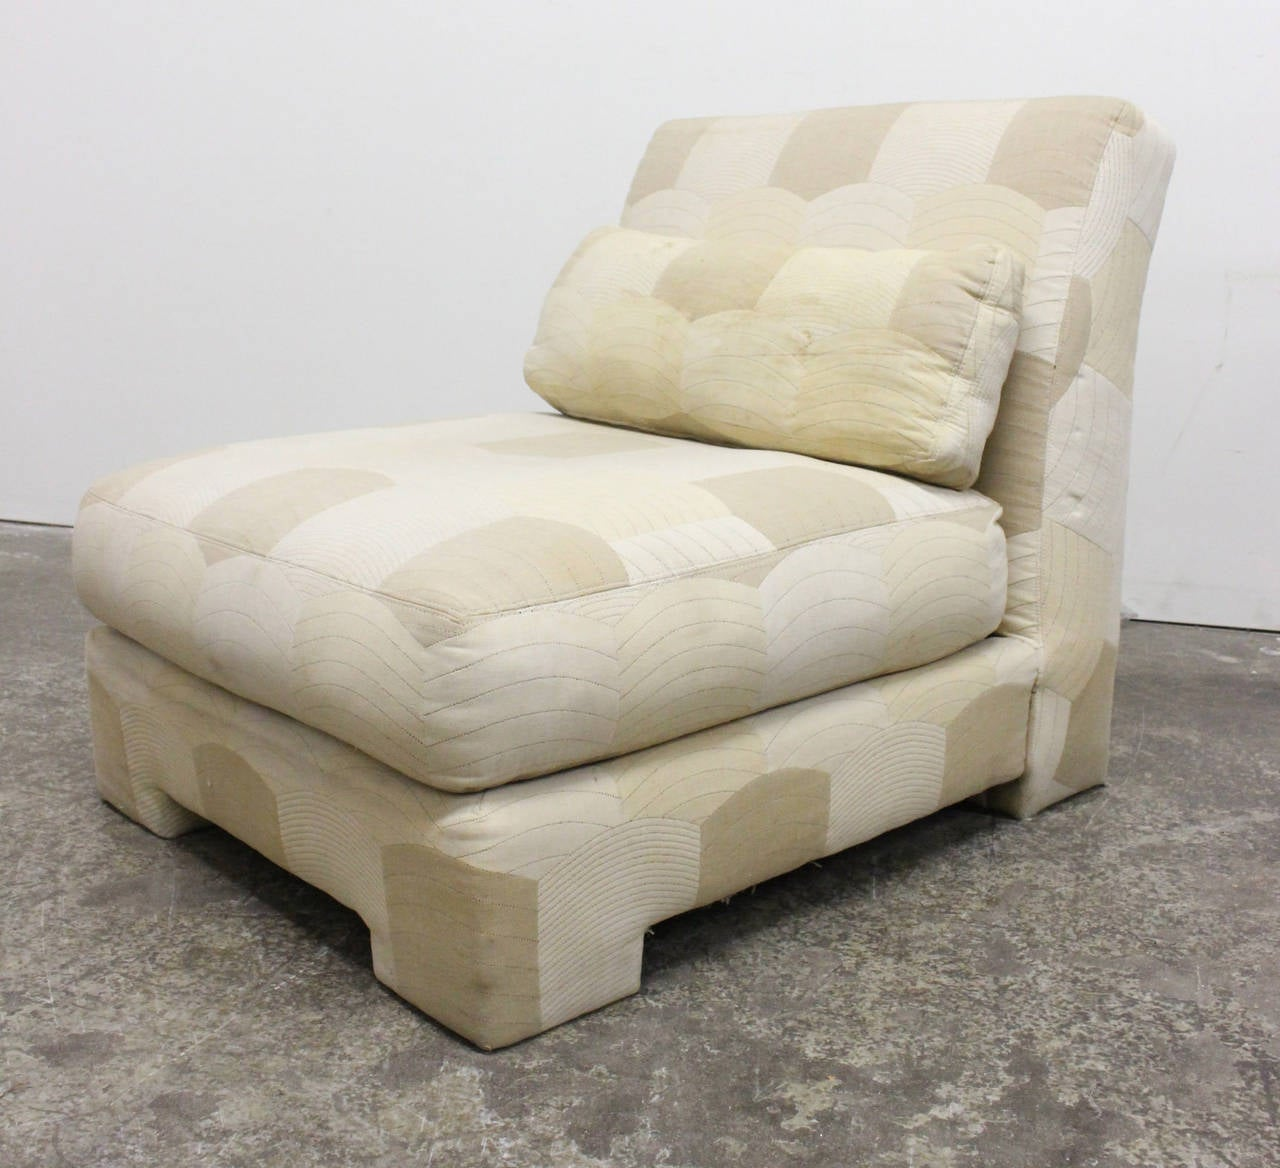 Pair of Slipper Lounge Chairs by Milo Baughman for Thayer Coggin 5